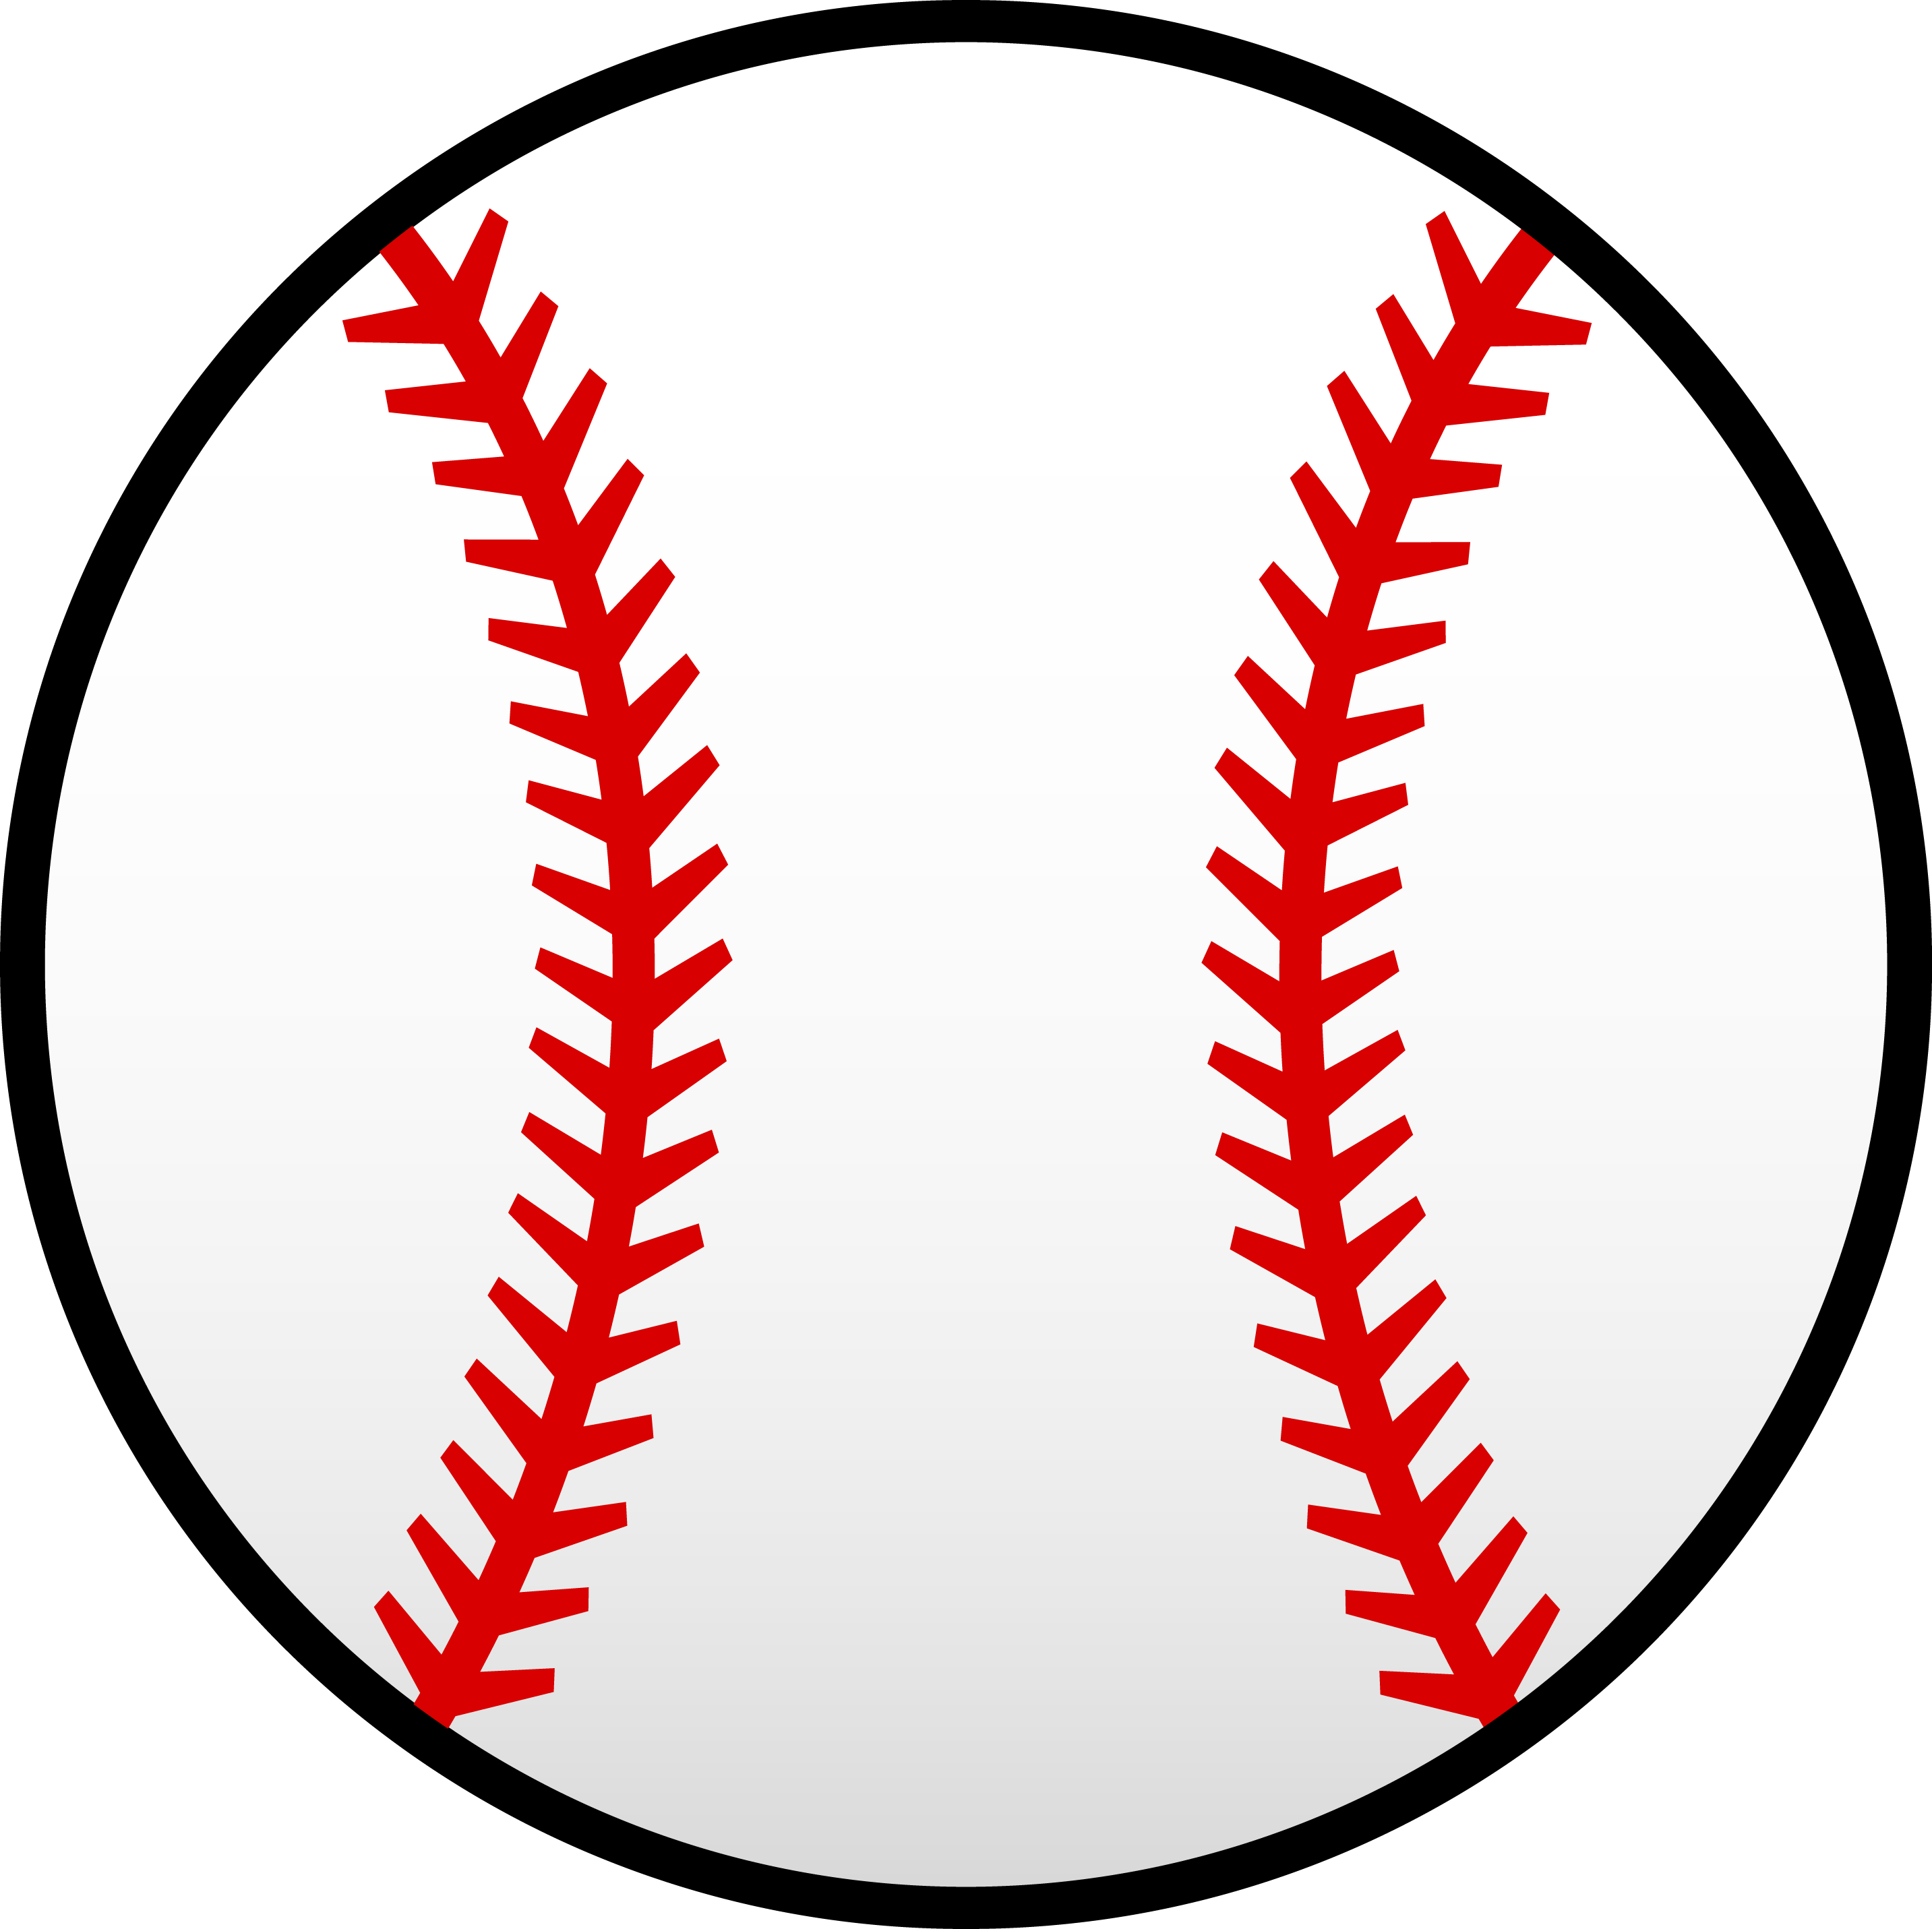 Clipart heart baseball. Pattern white with red